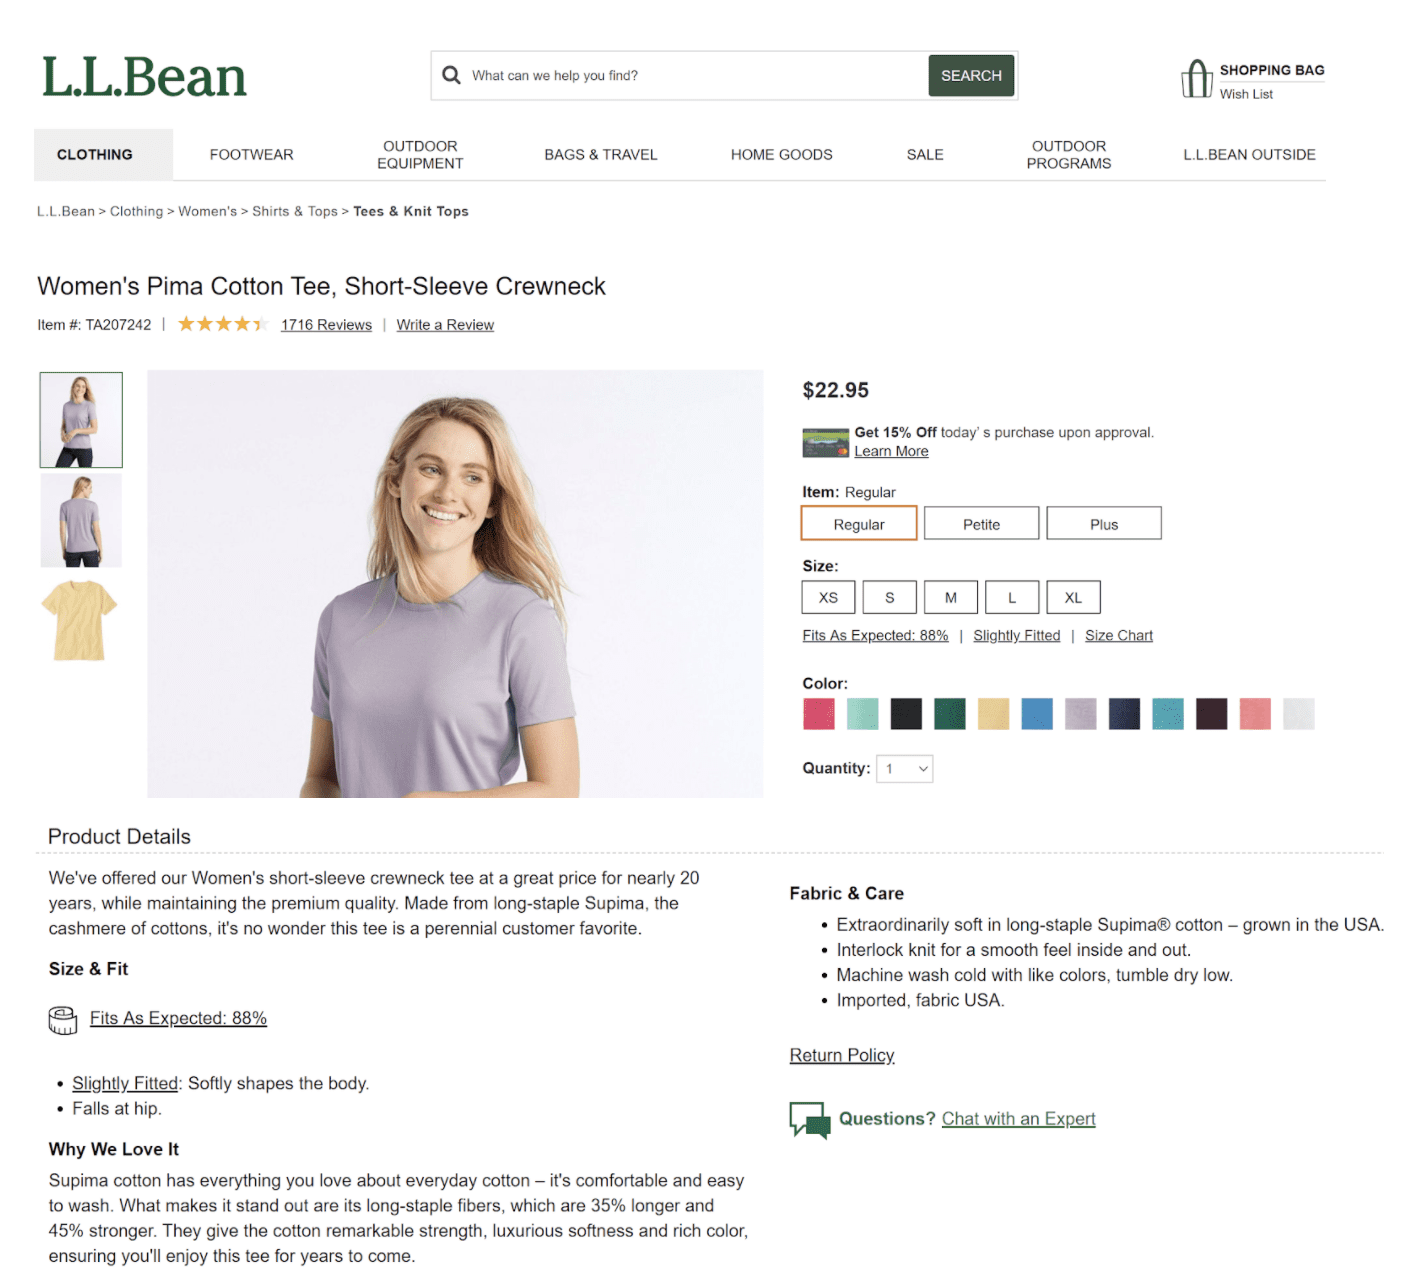 Example of a thorough product description page from L.L. Bean.